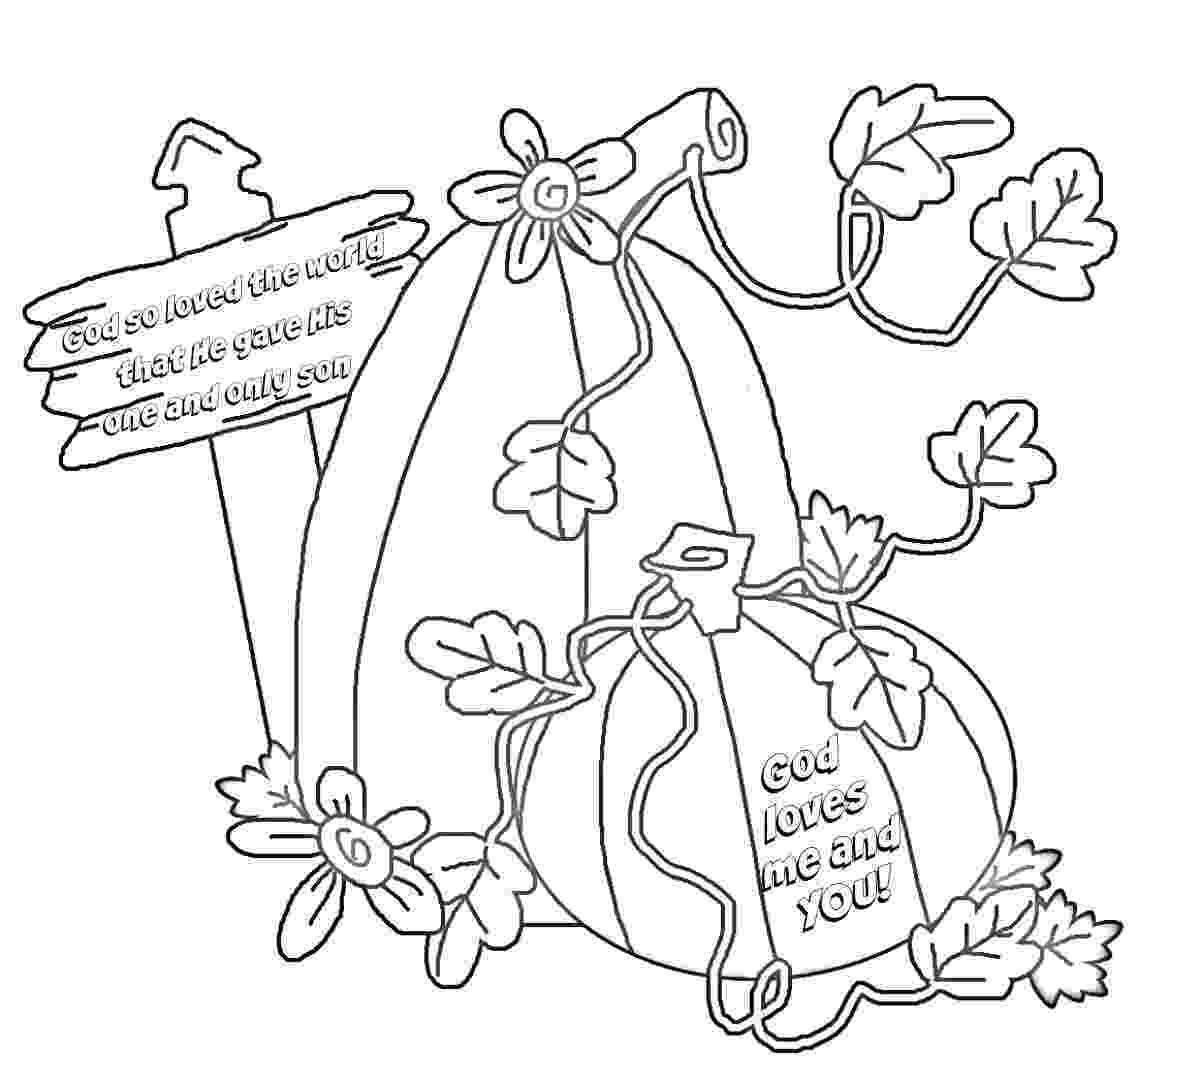 halloween coloring pages for sunday school christian pumpkin sunday school crafts children39s coloring pages for halloween sunday school